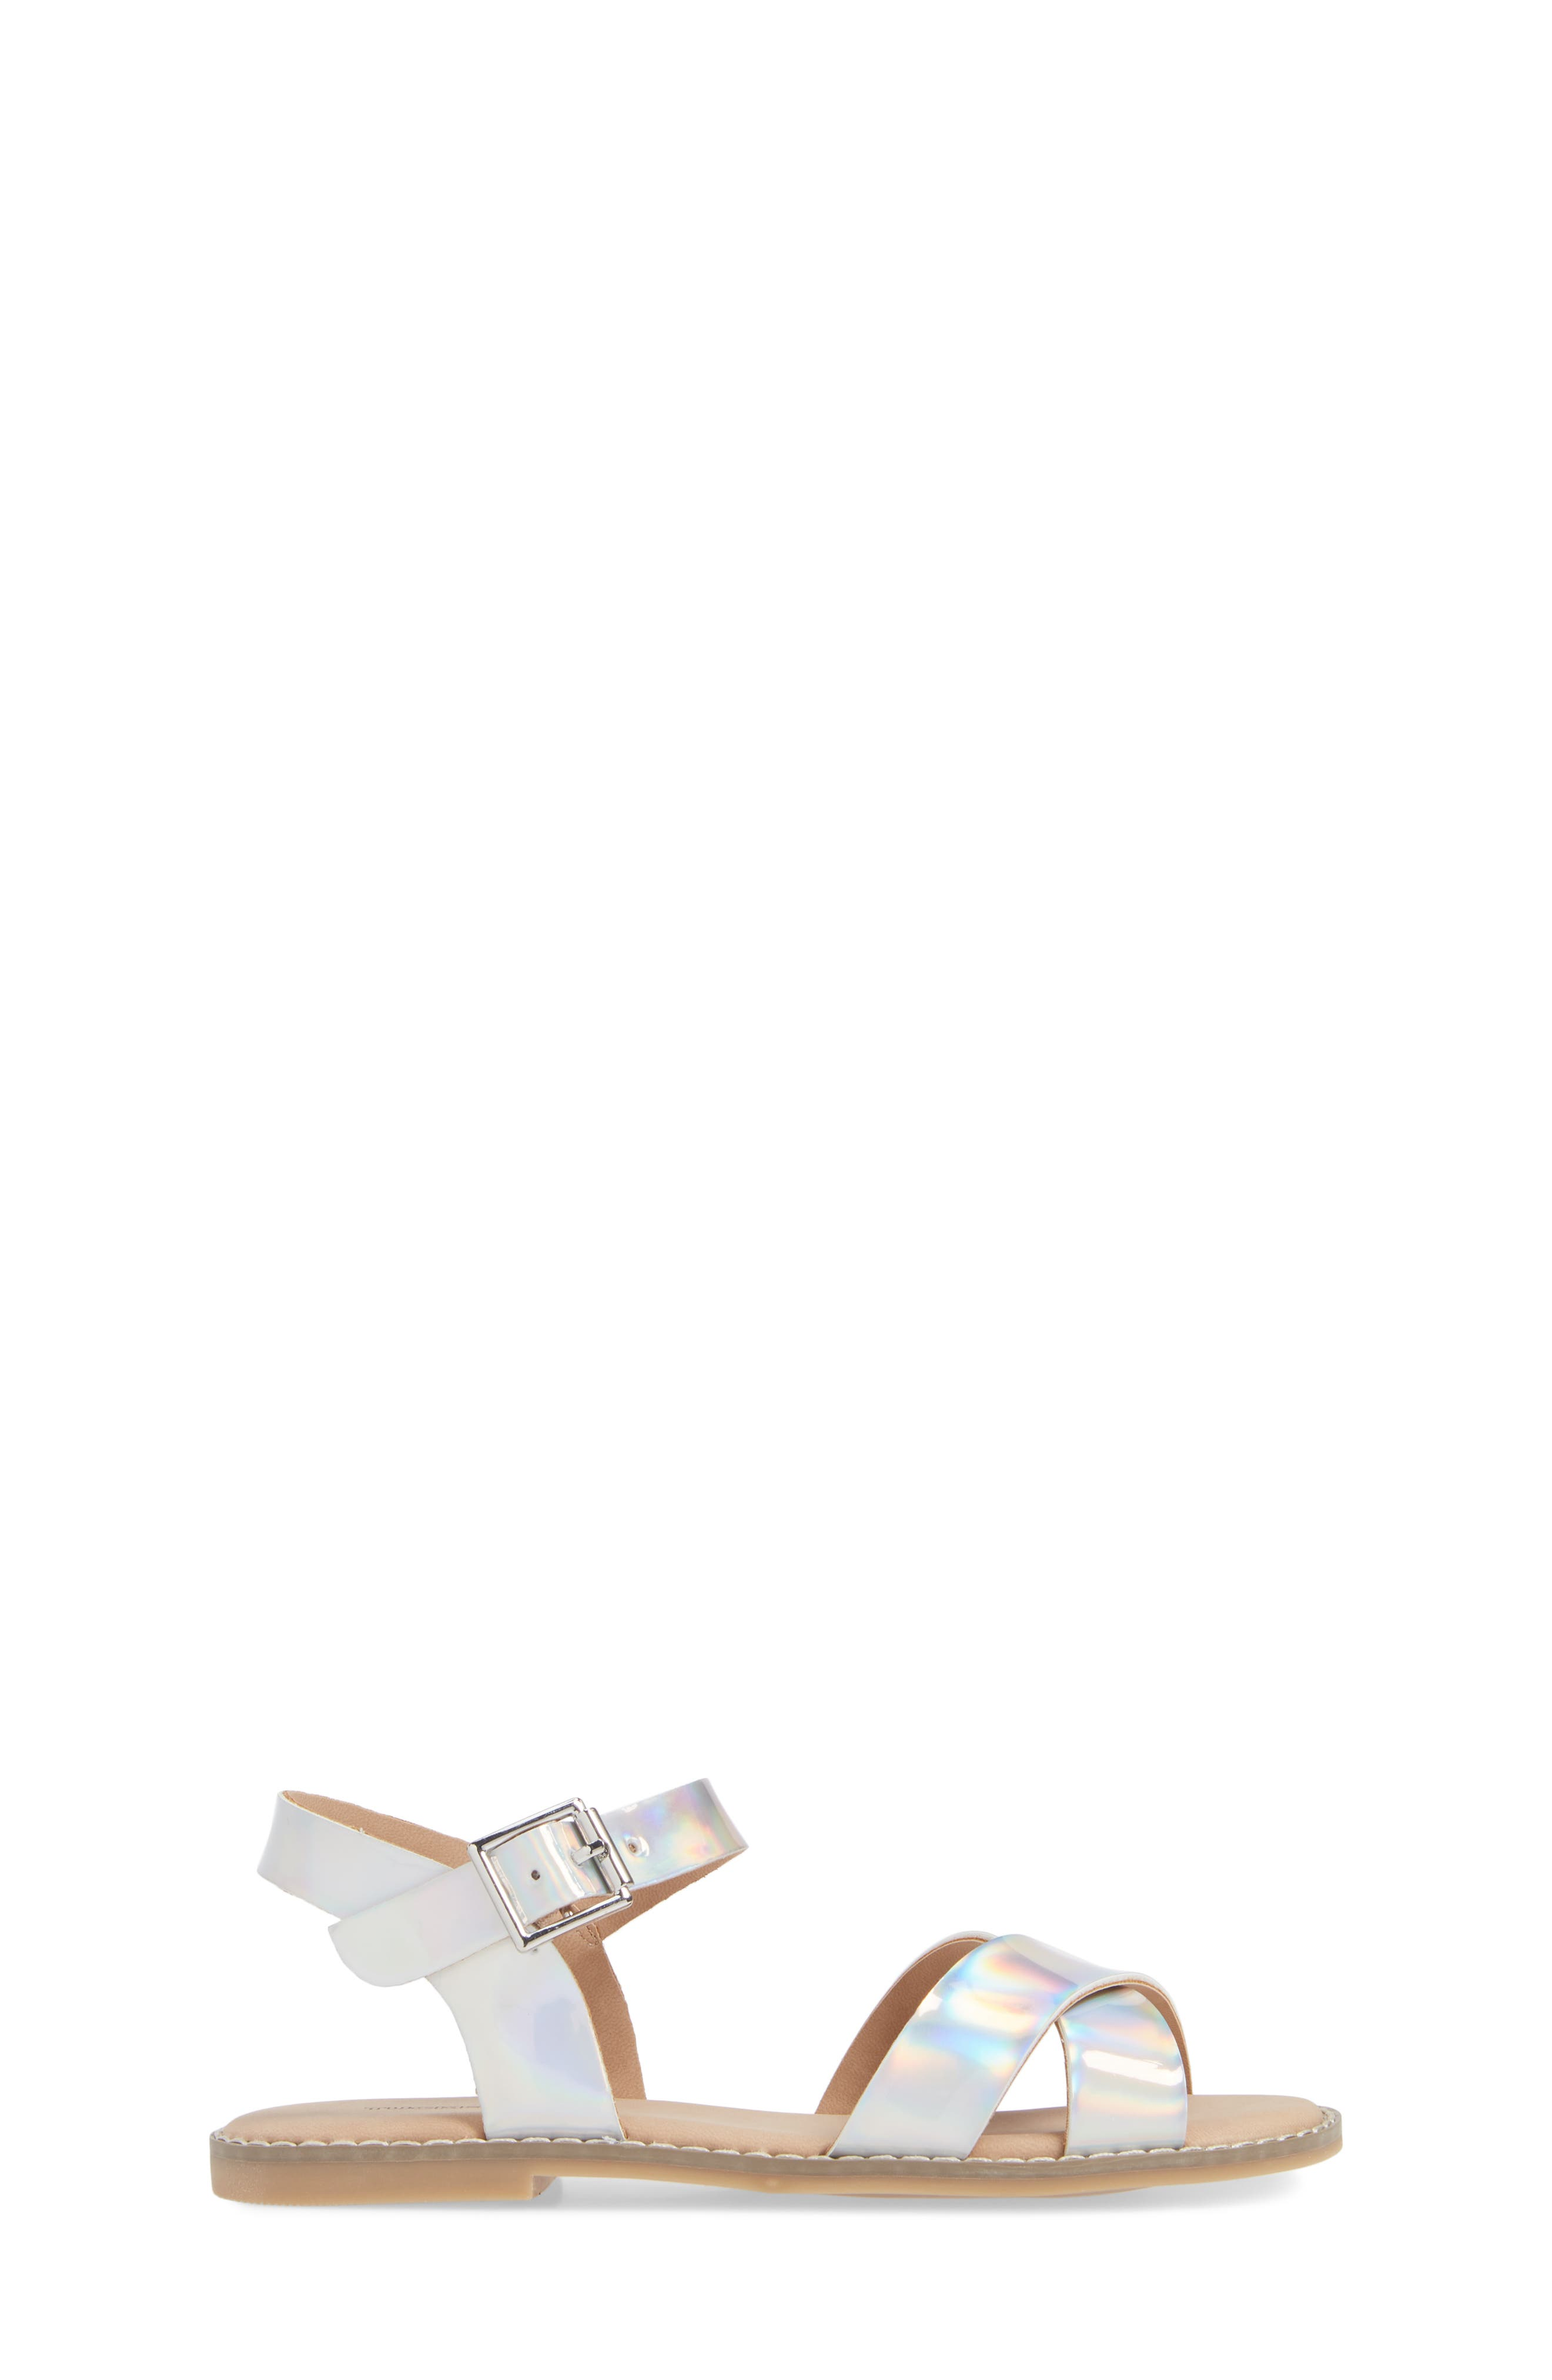 Arya Cross Strap Sandal,                             Alternate thumbnail 3, color,                             SILVER HOLOGRAM FAUX LEATHER